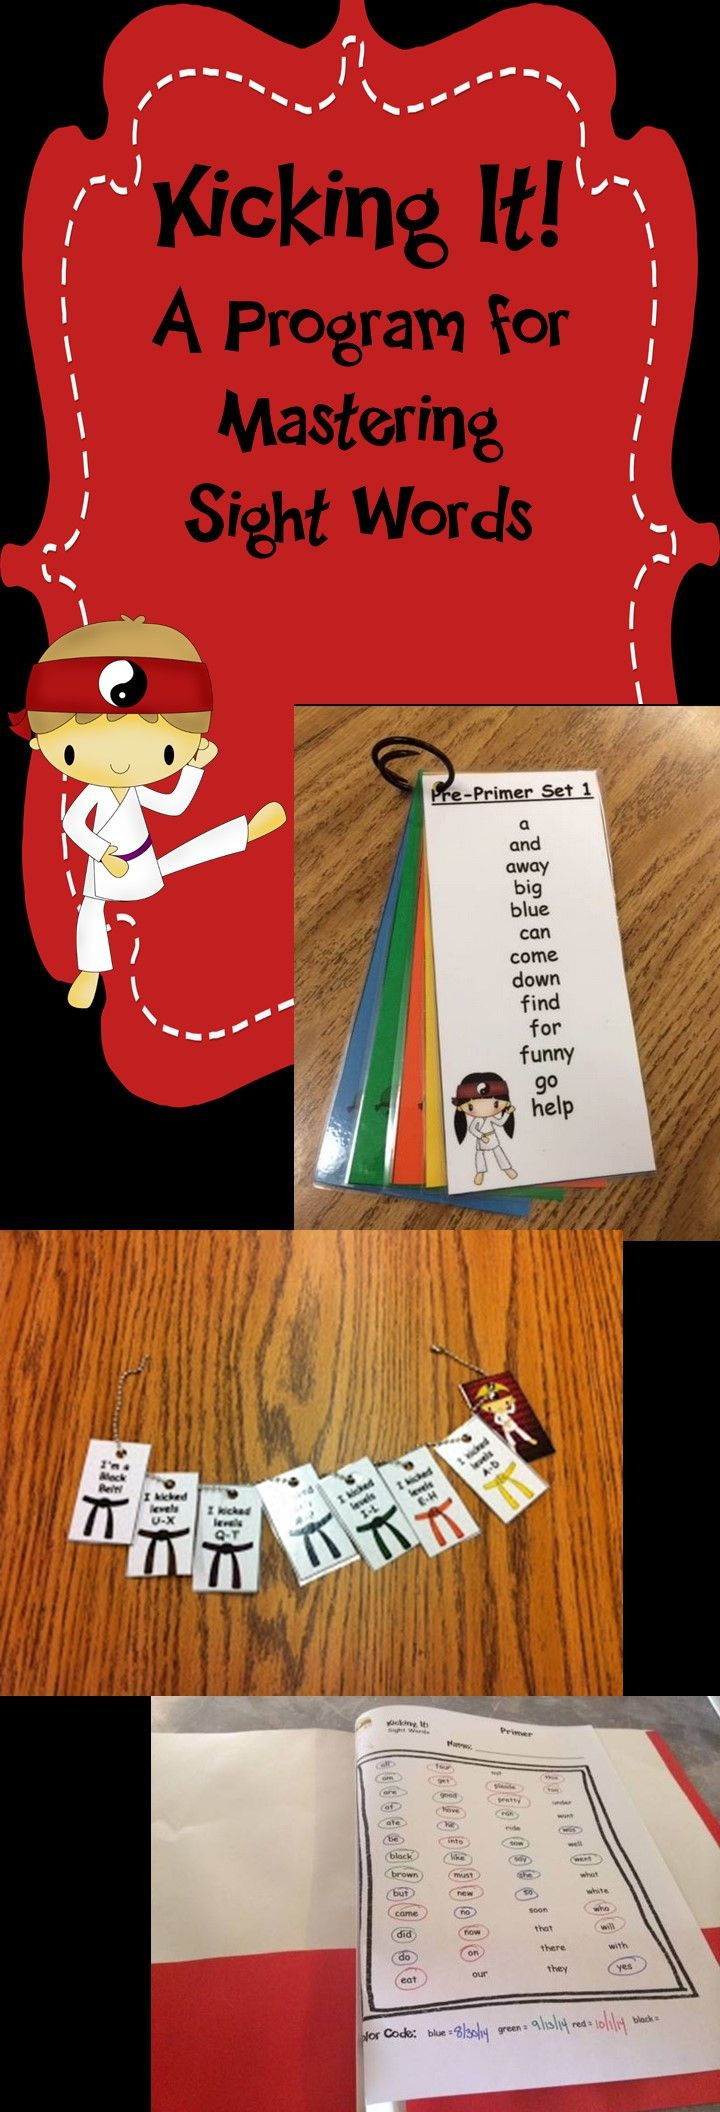 "Fun and motivating way to learn sight words! Students earn ""belts"" similar to karate as they master reading sight words."